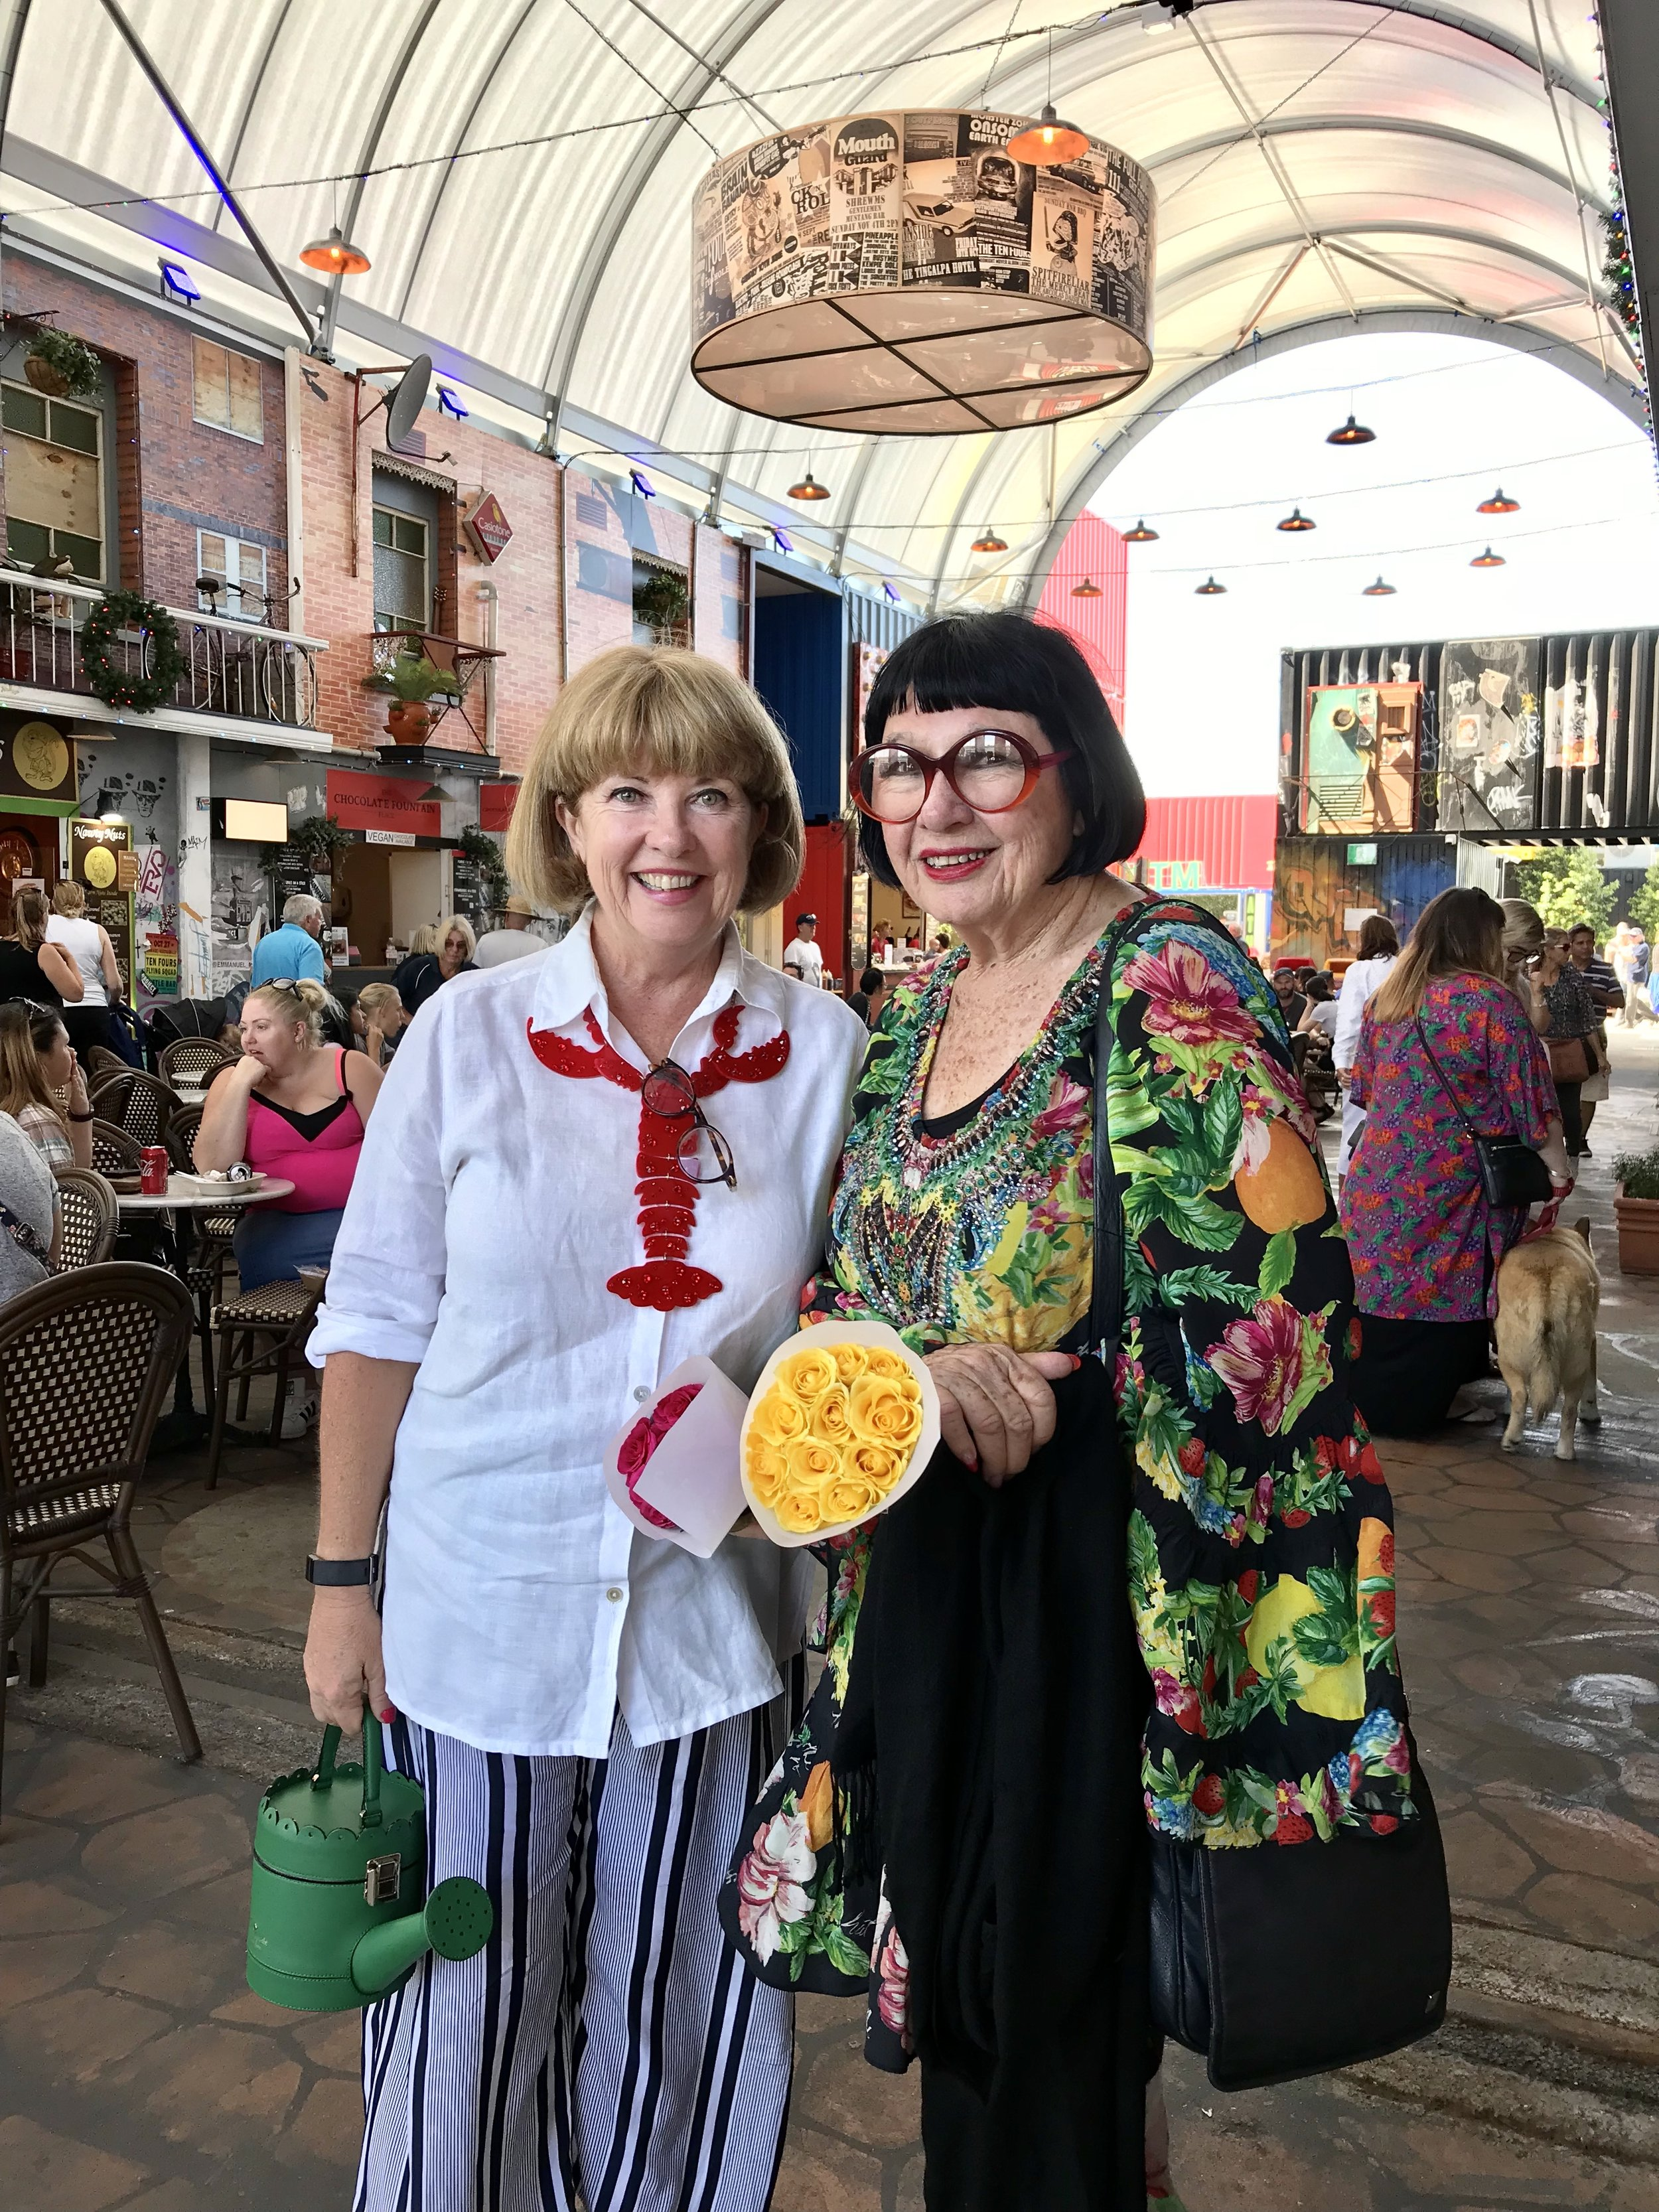 Jacki MacDonald and Peter Hackworth - Brisbane's Ladies of Eat Street